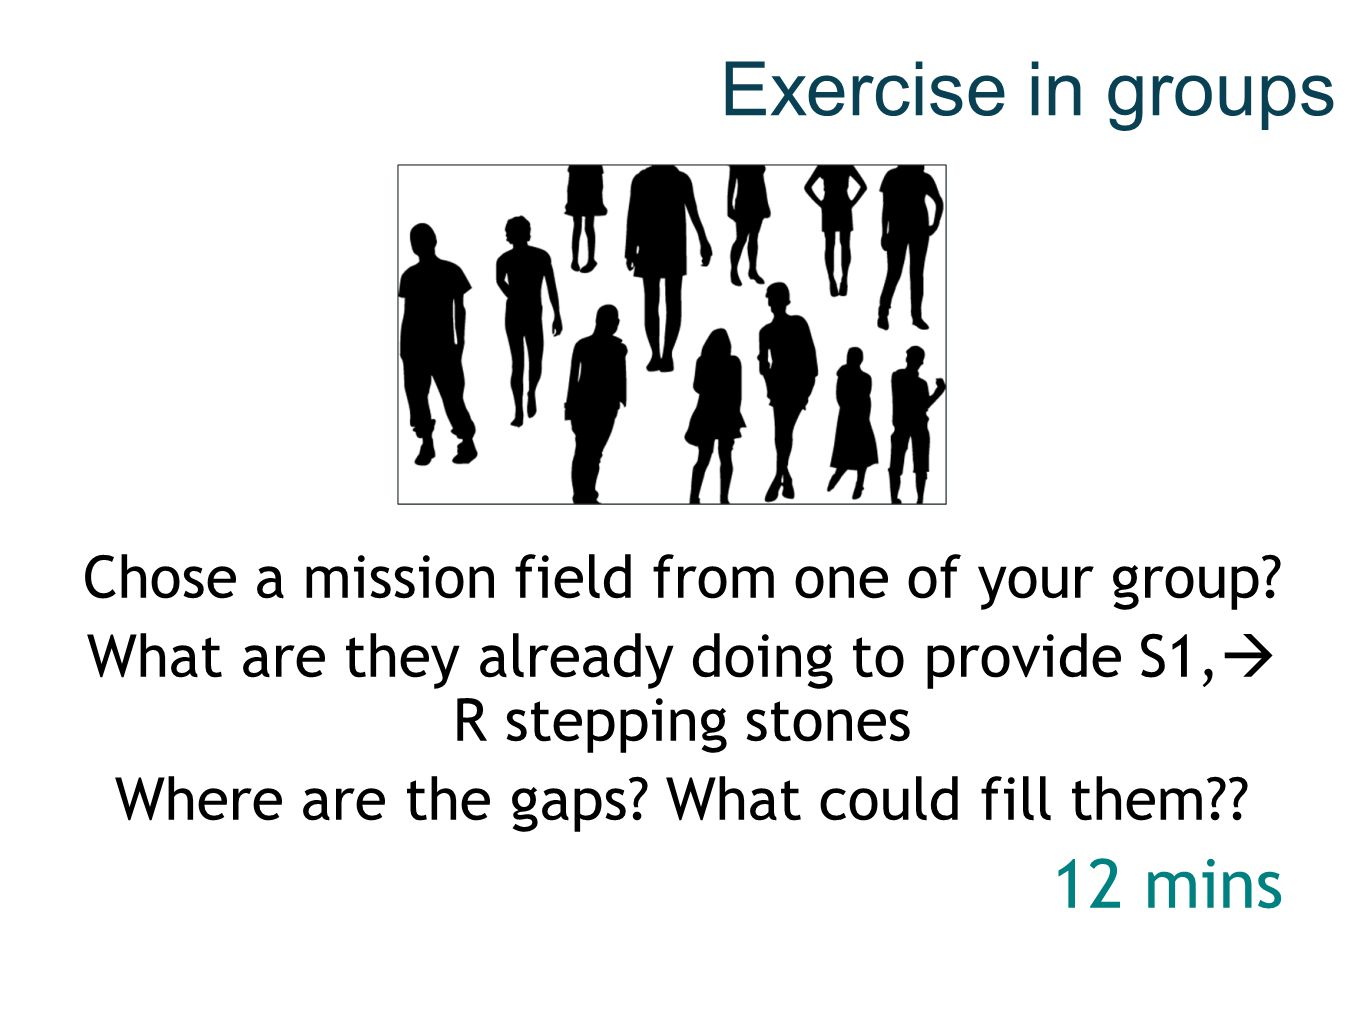 Exercise in groups 12 mins